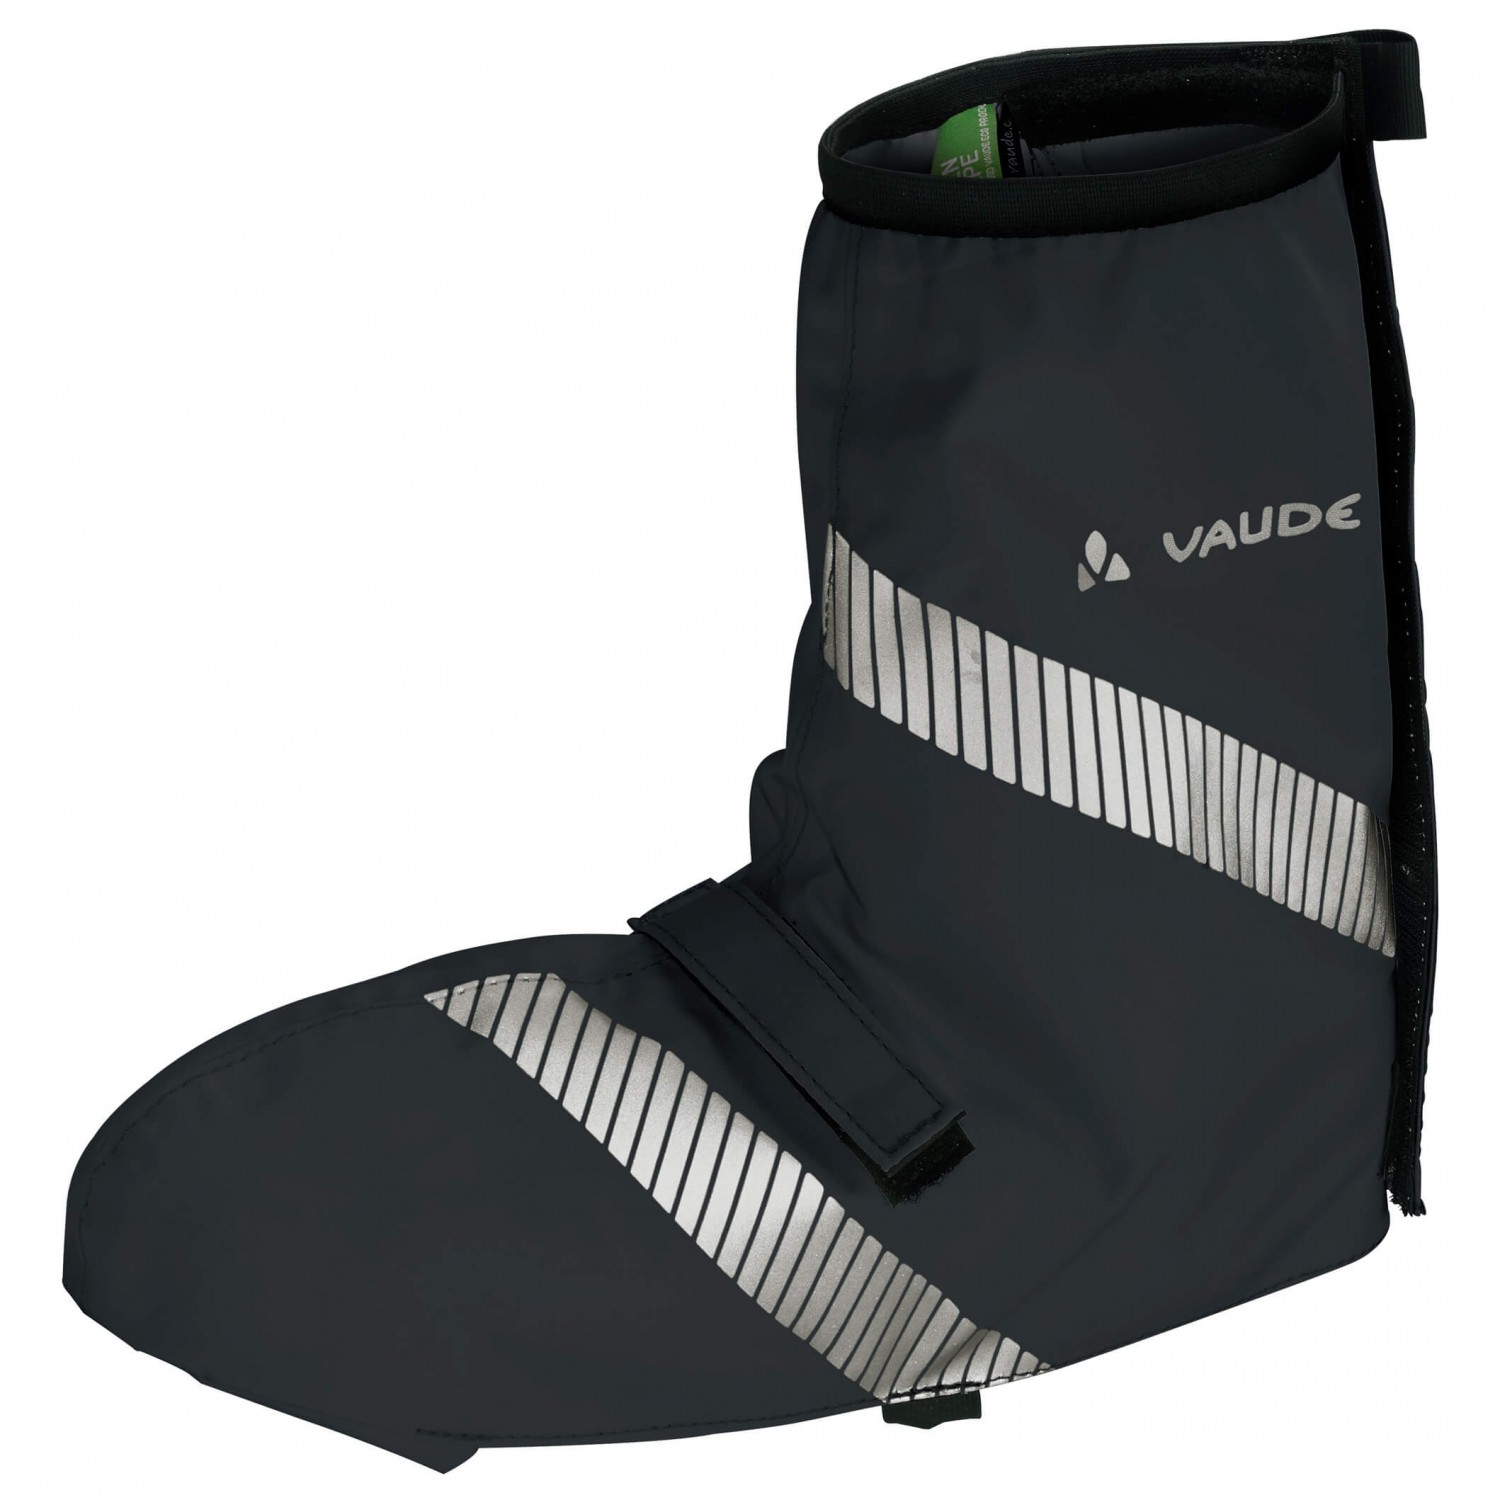 Vaude Luminum Bike Gaiter Cycling Overshoes Buy Online